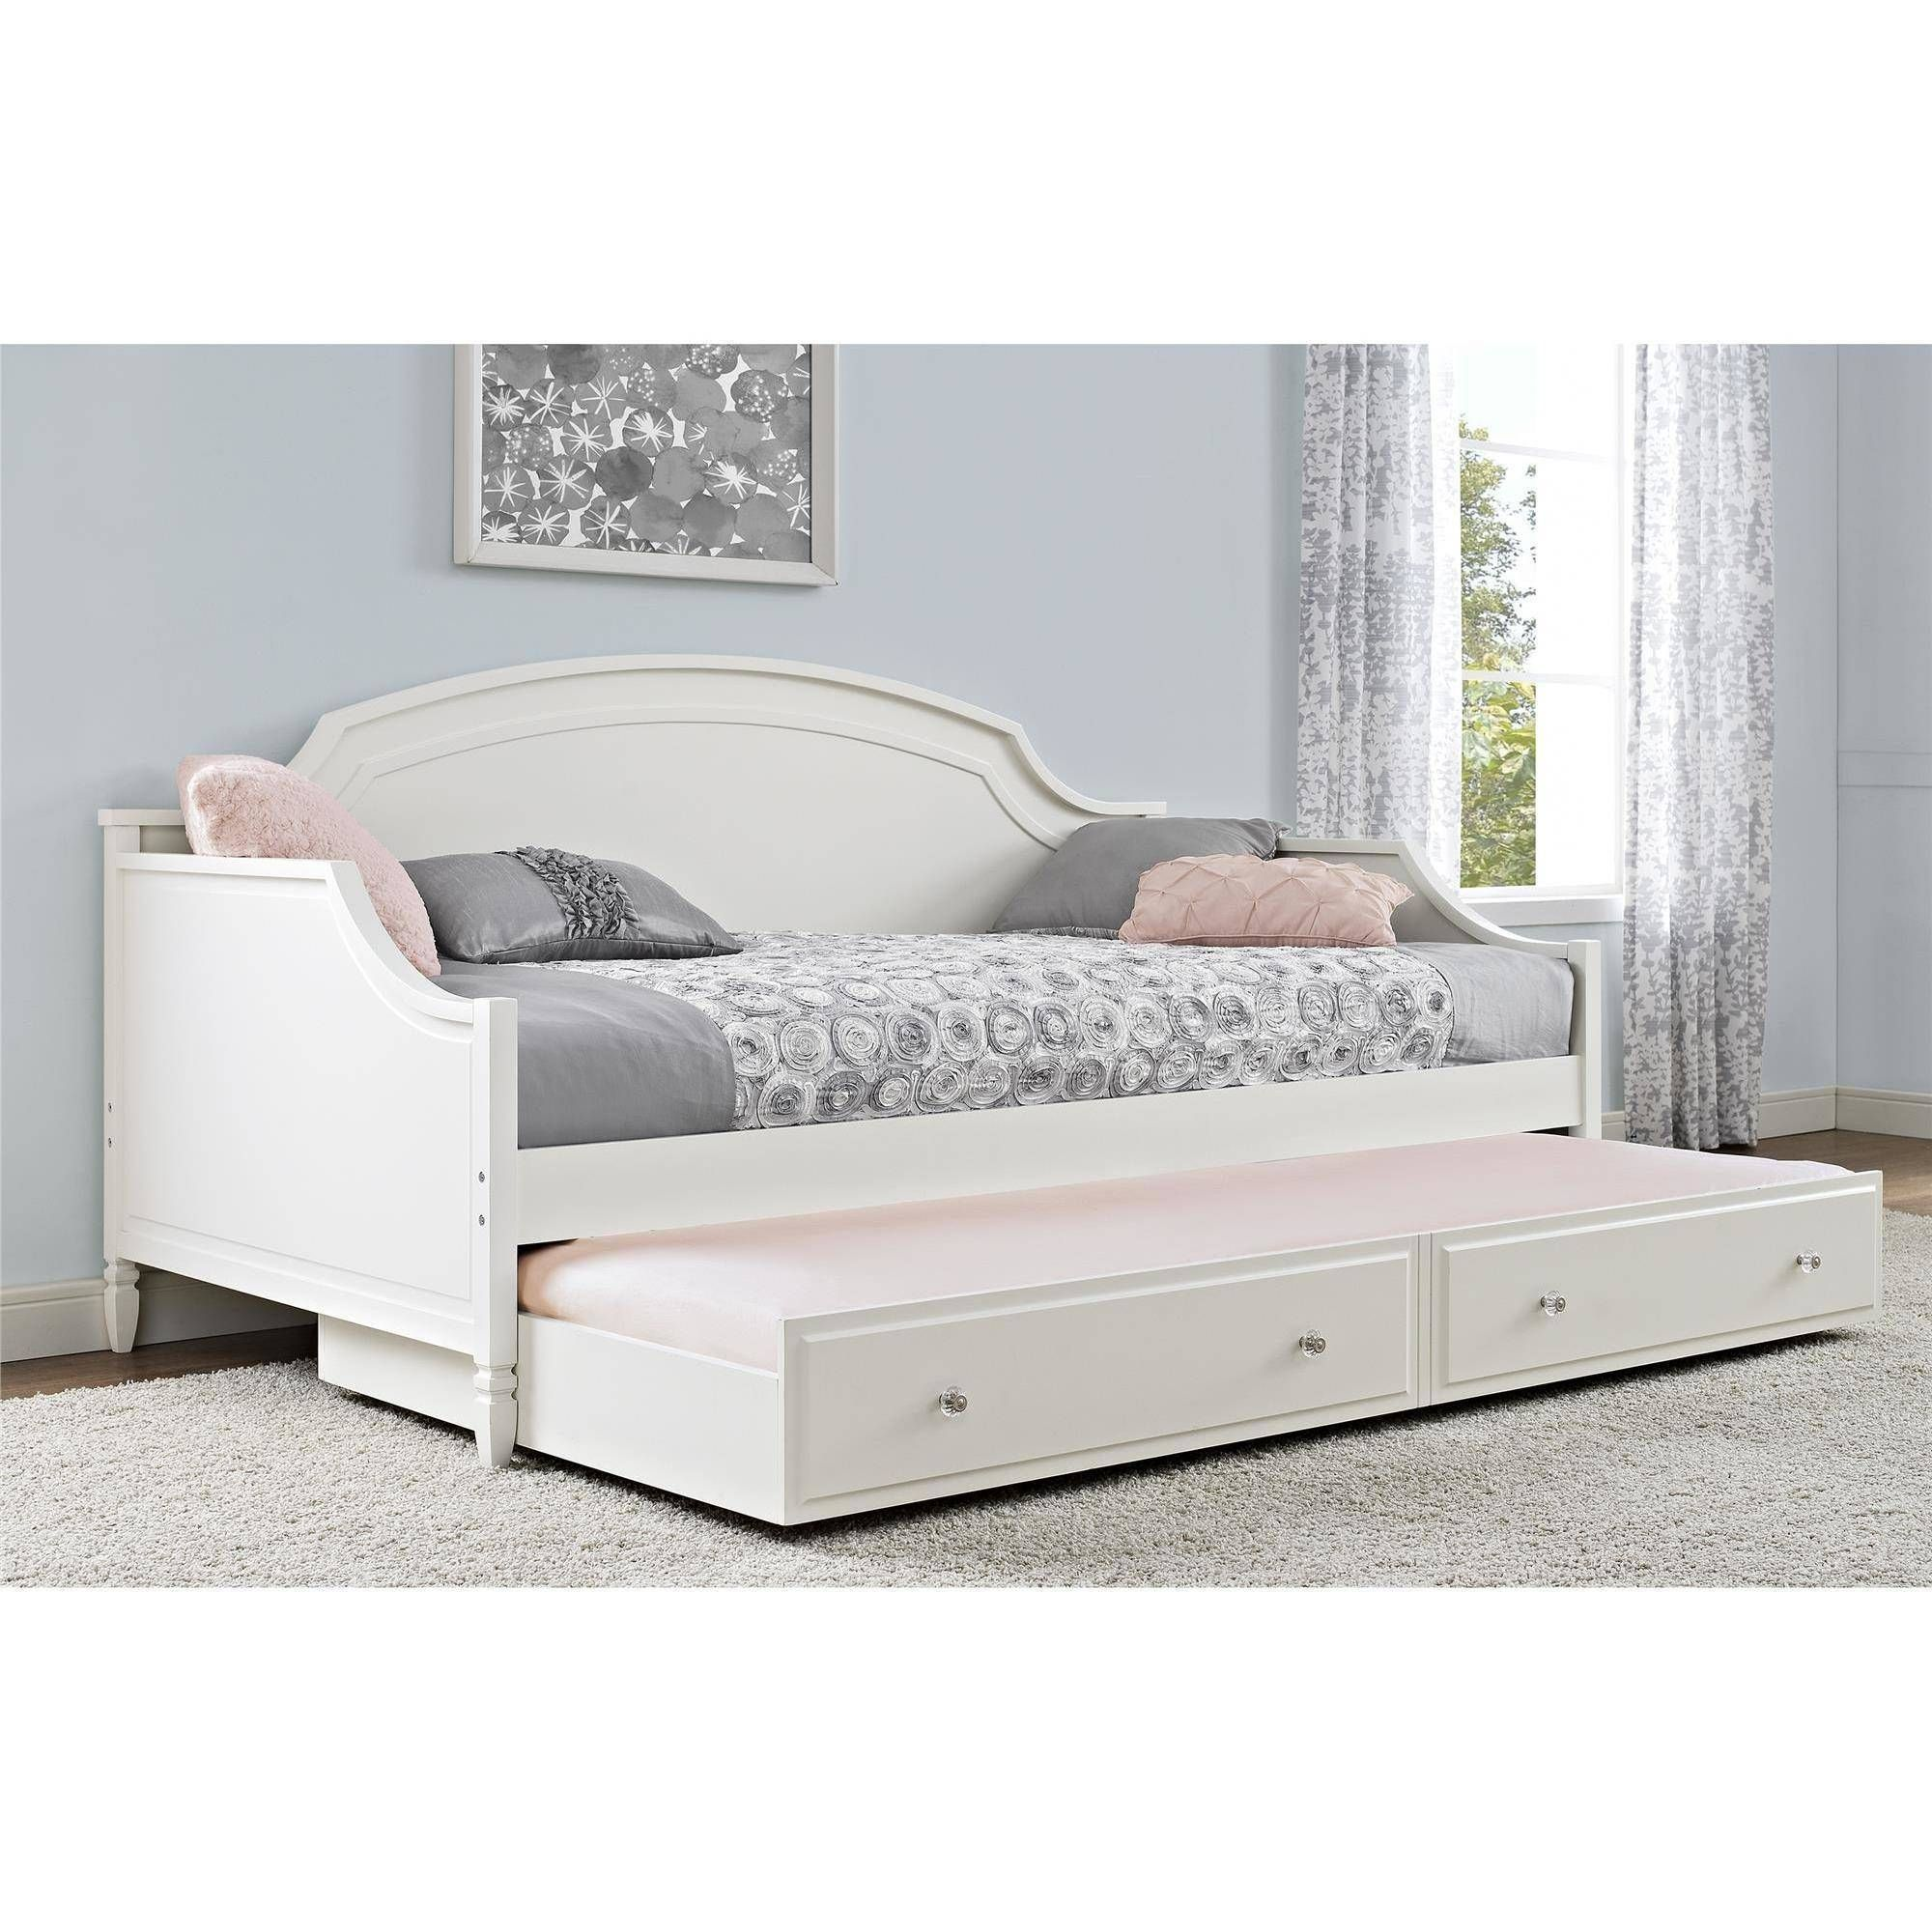 Best Home Daybed Room Girls Daybed Guest Room Office 400 x 300